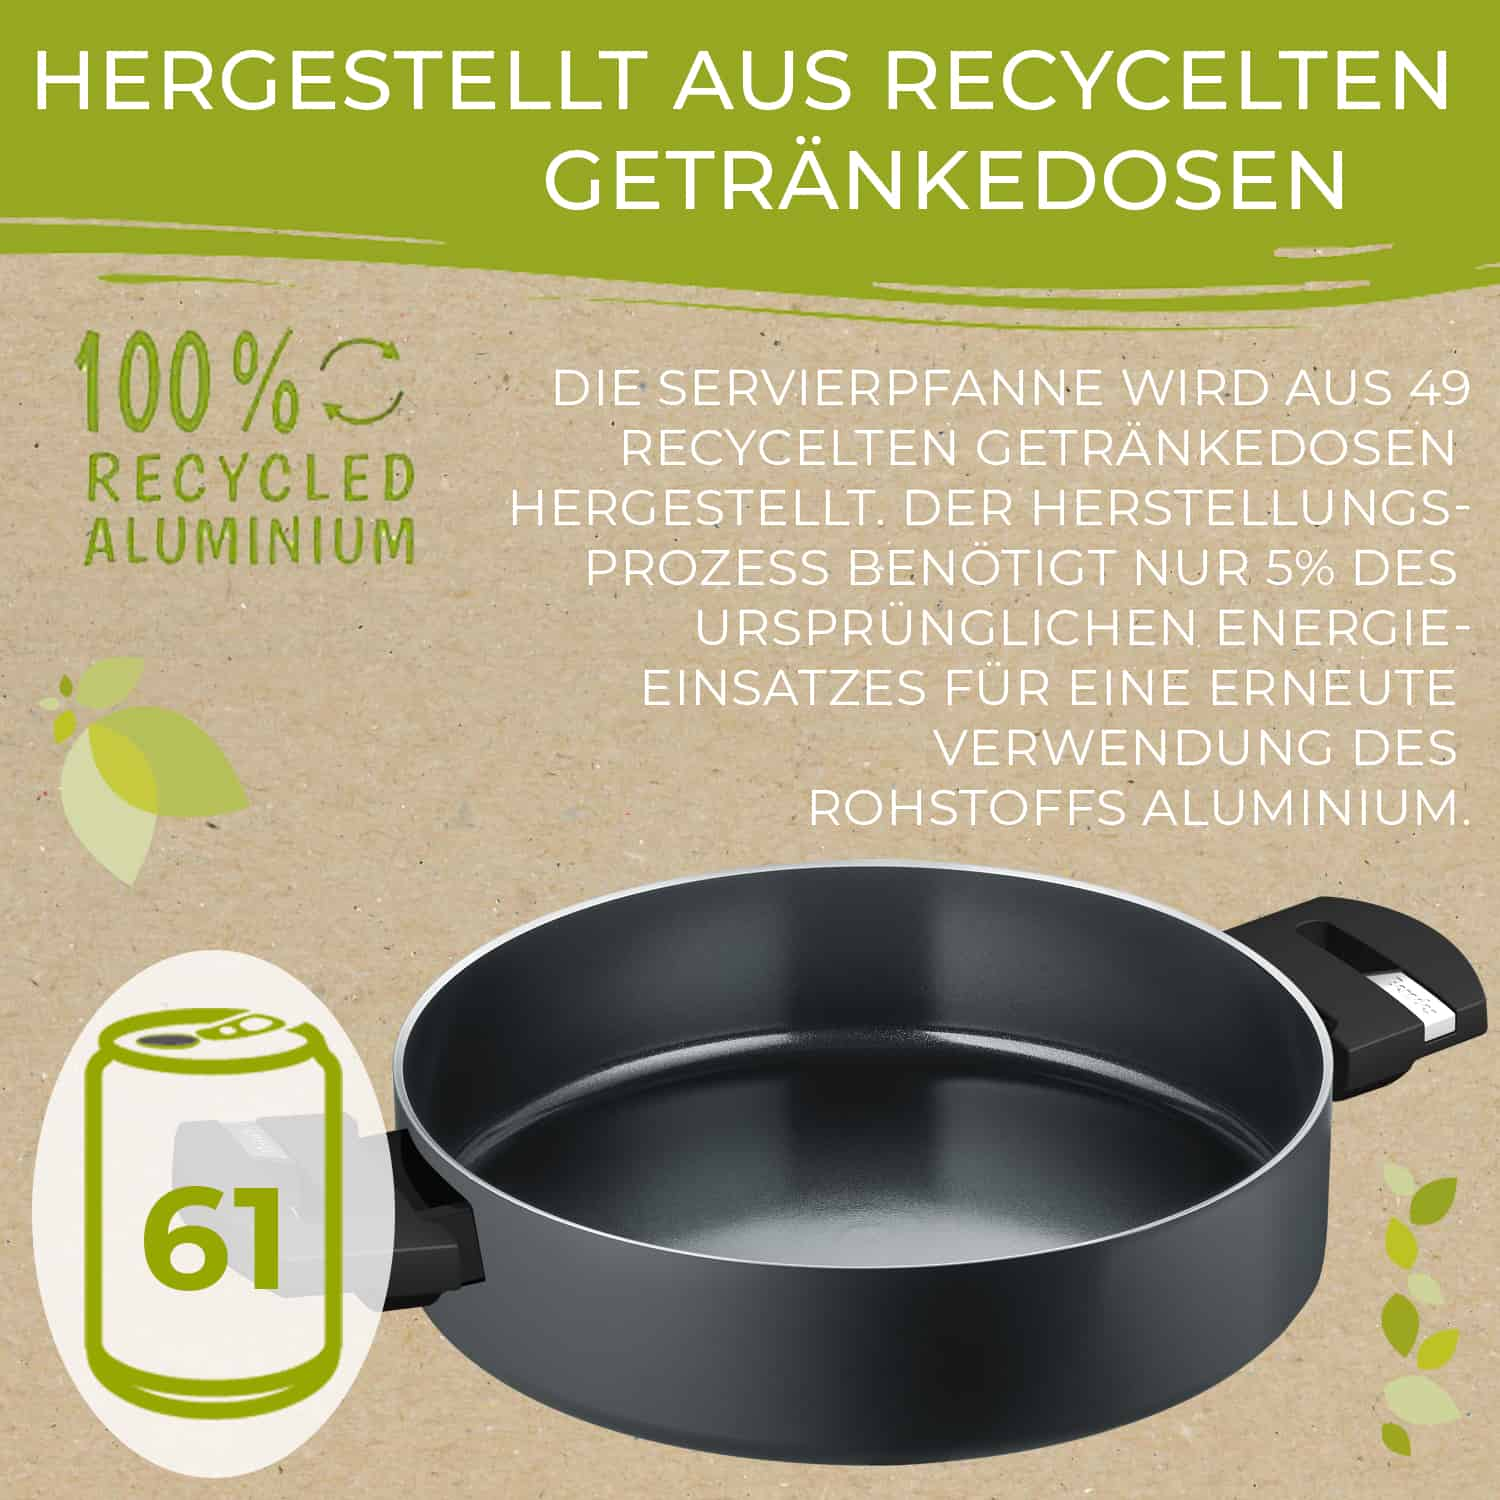 Berndes Servierpfanne mit Glasdeckel b.green Alu Recycled Induction schwarz 28 cm